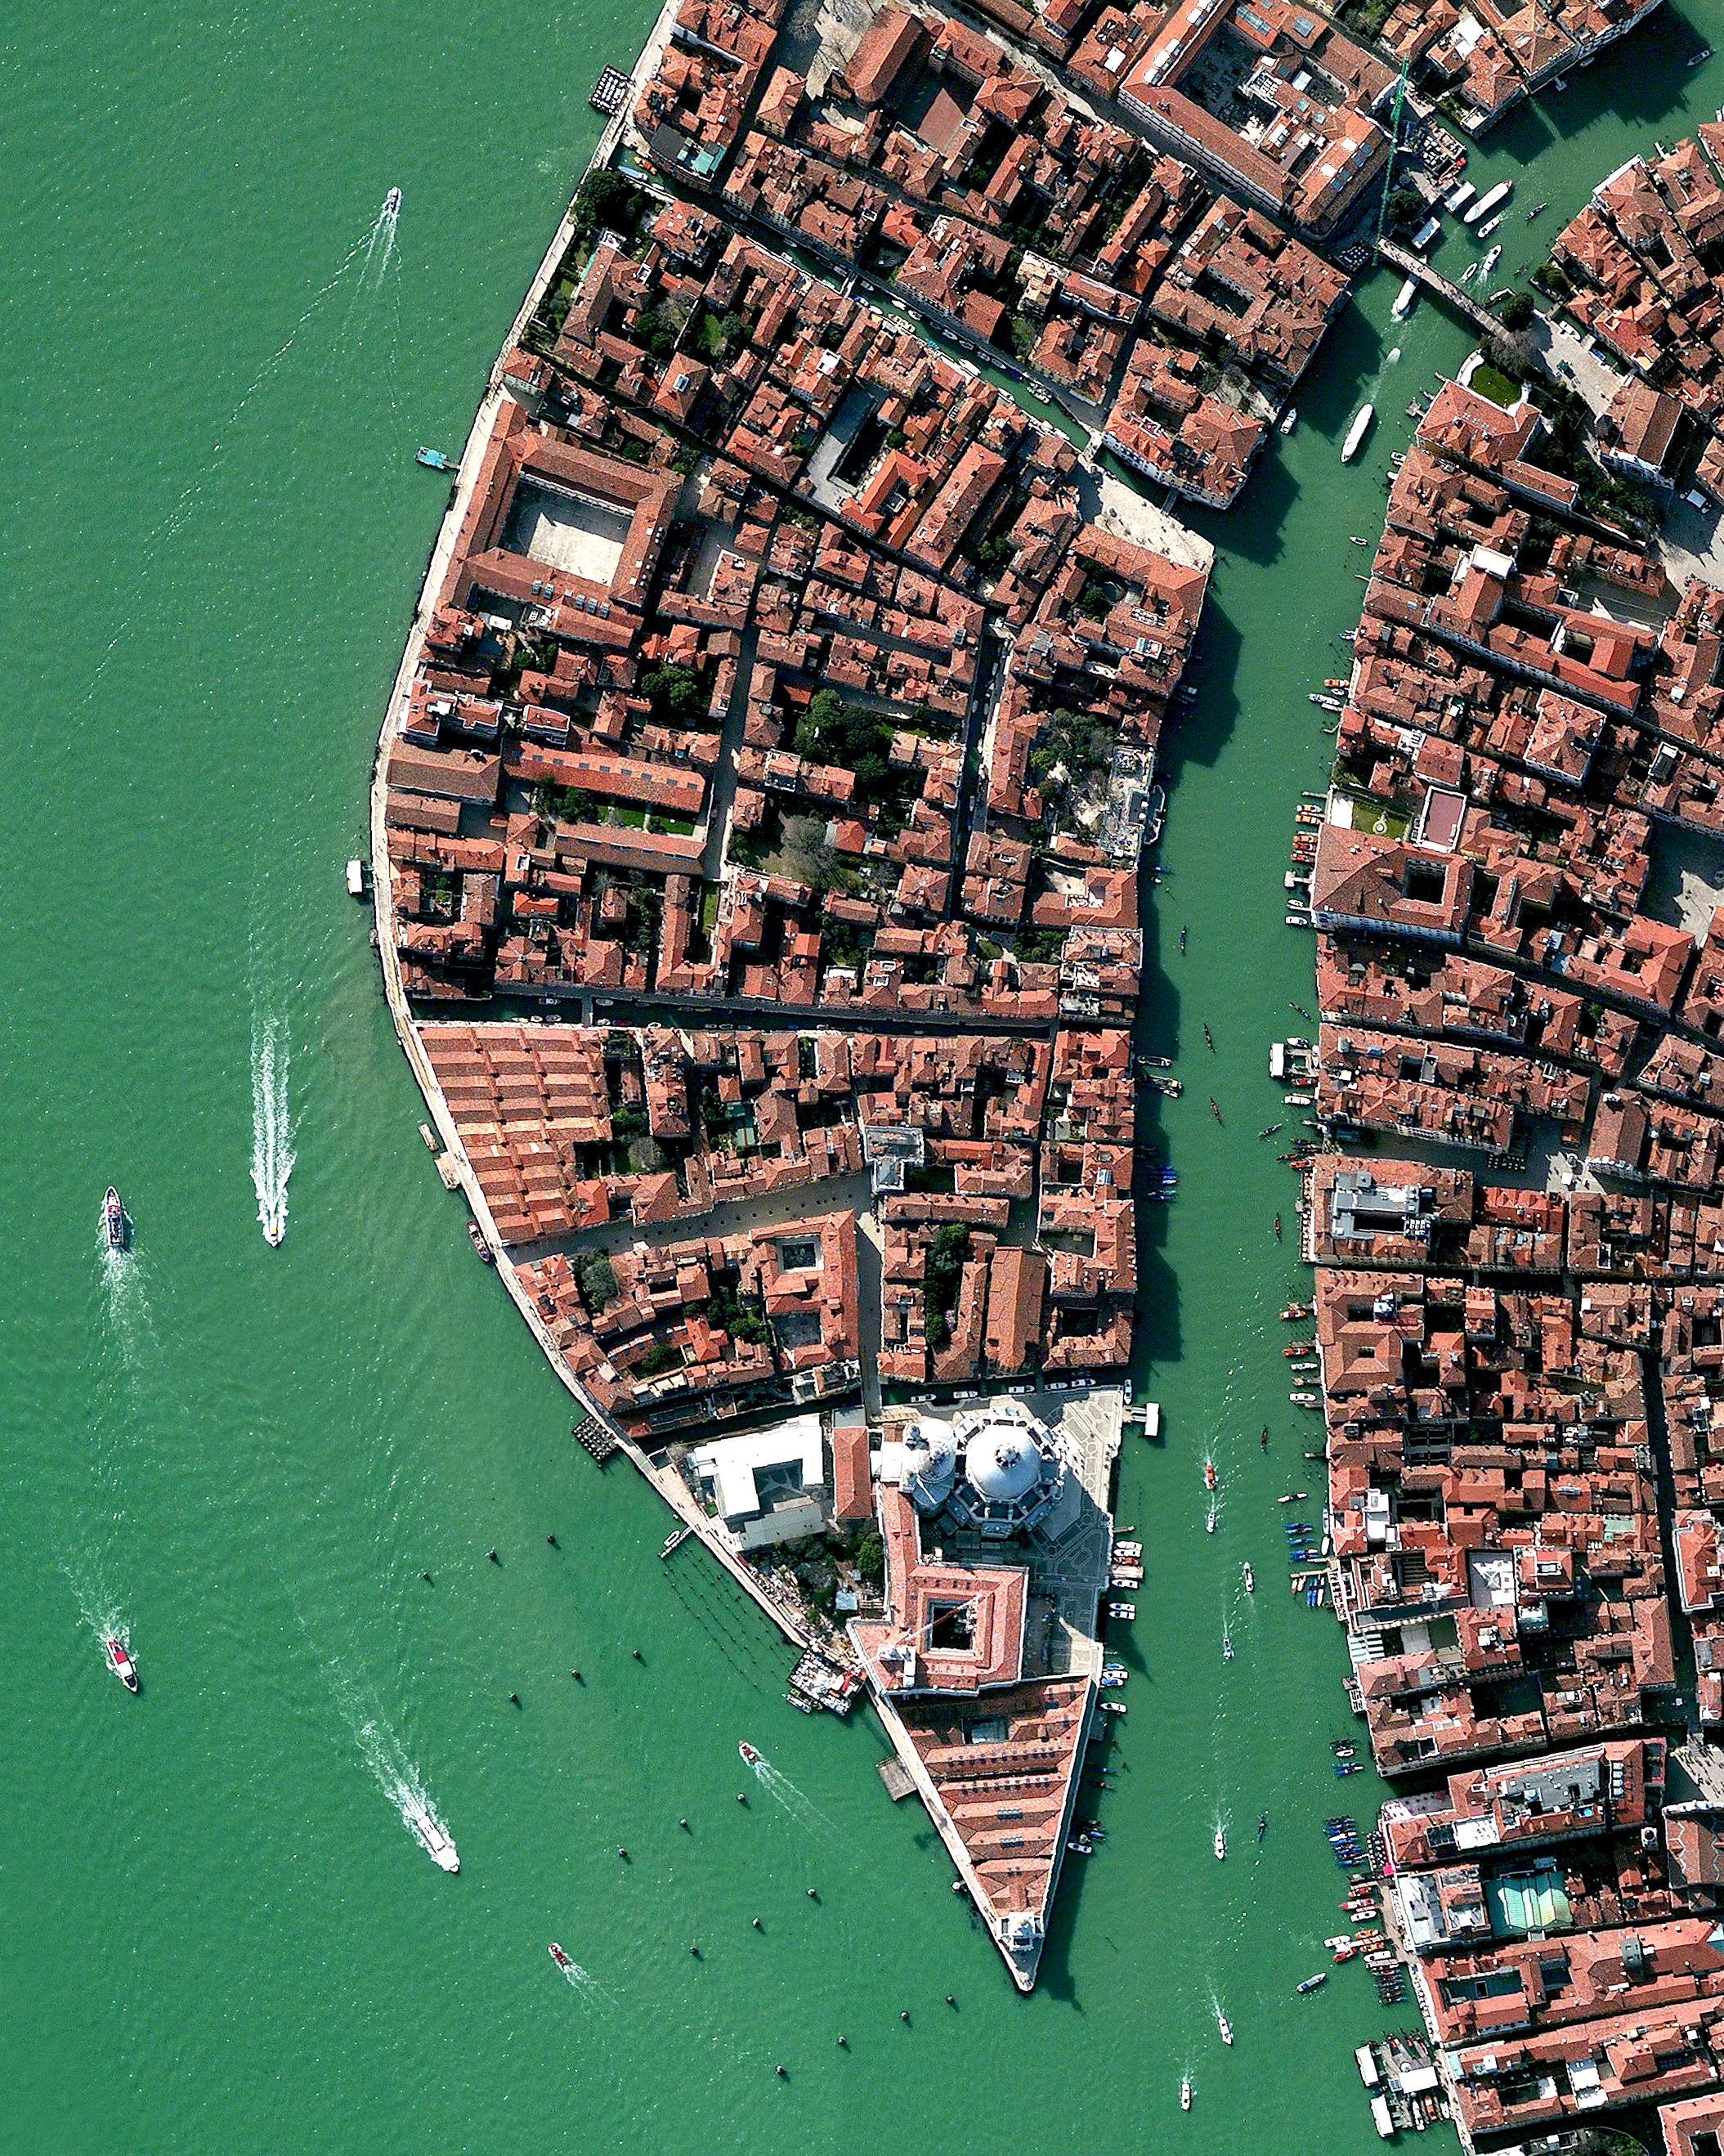 "This Overview shows part of the Dorsoduro sestiere in Venice, Italy. A sestiere — which comes from the Italian ""sesto,"" meaning sixth — is a subdivision of an Italian town or city divided into six districts. Dorsoduro is Venice's university district and is filled with bars, restaurants, indie shops, vintage fashion boutiques and art galleries, such as the Peggy Guggenheim Collection.  45°25'49.3""N, 12°20'00.4""E  Source imagery: DigitalGlobe"